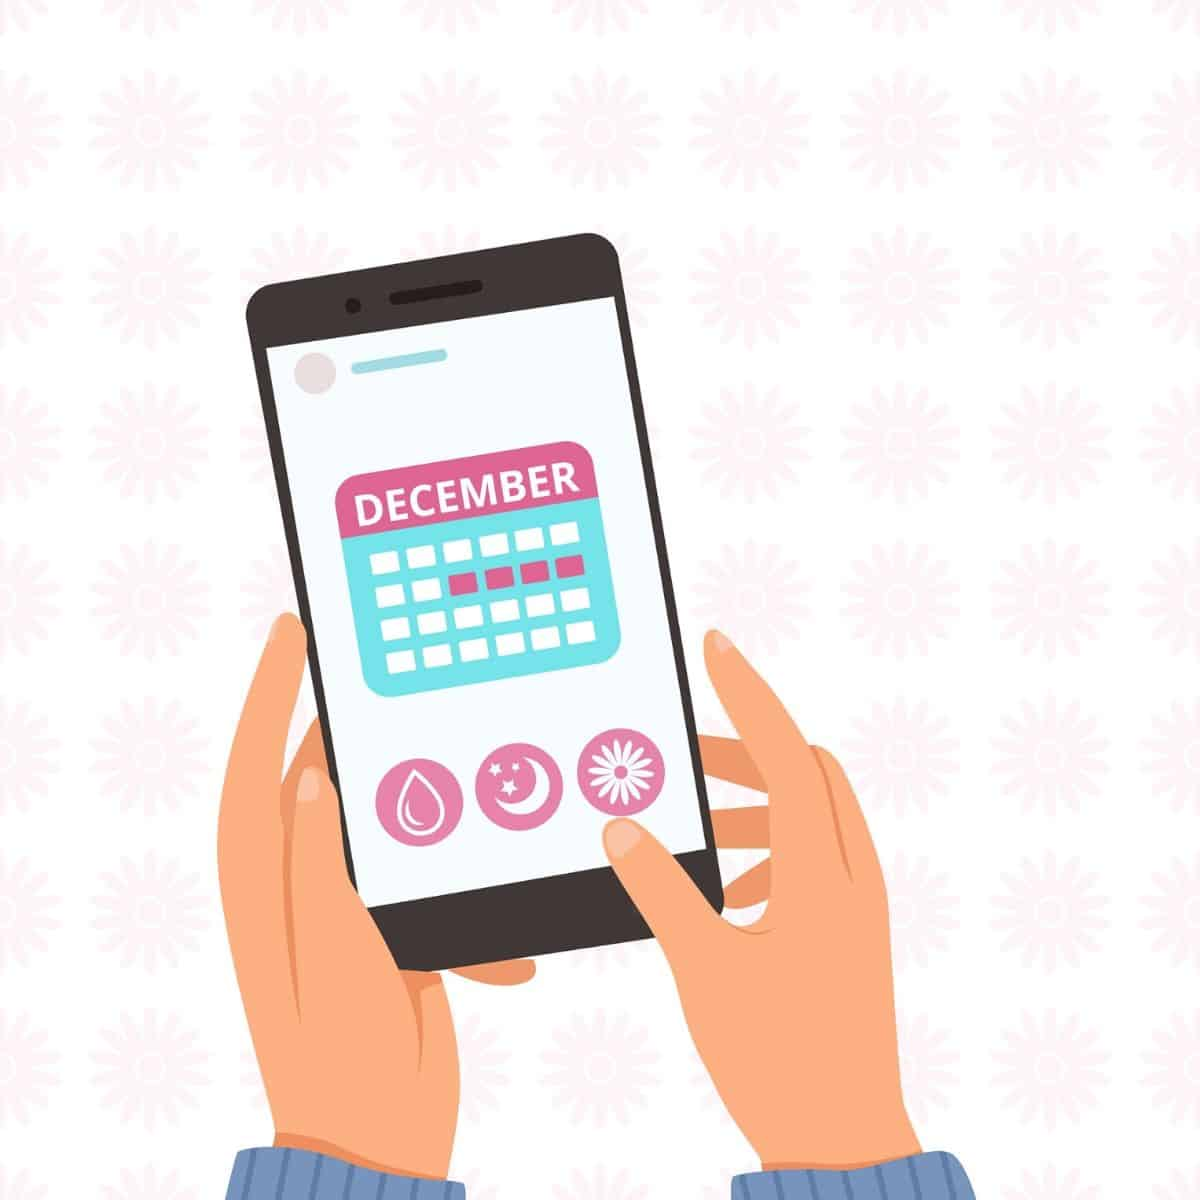 illustration showing hands holding a smartphone with a calendar and icons representing menstrual symptoms